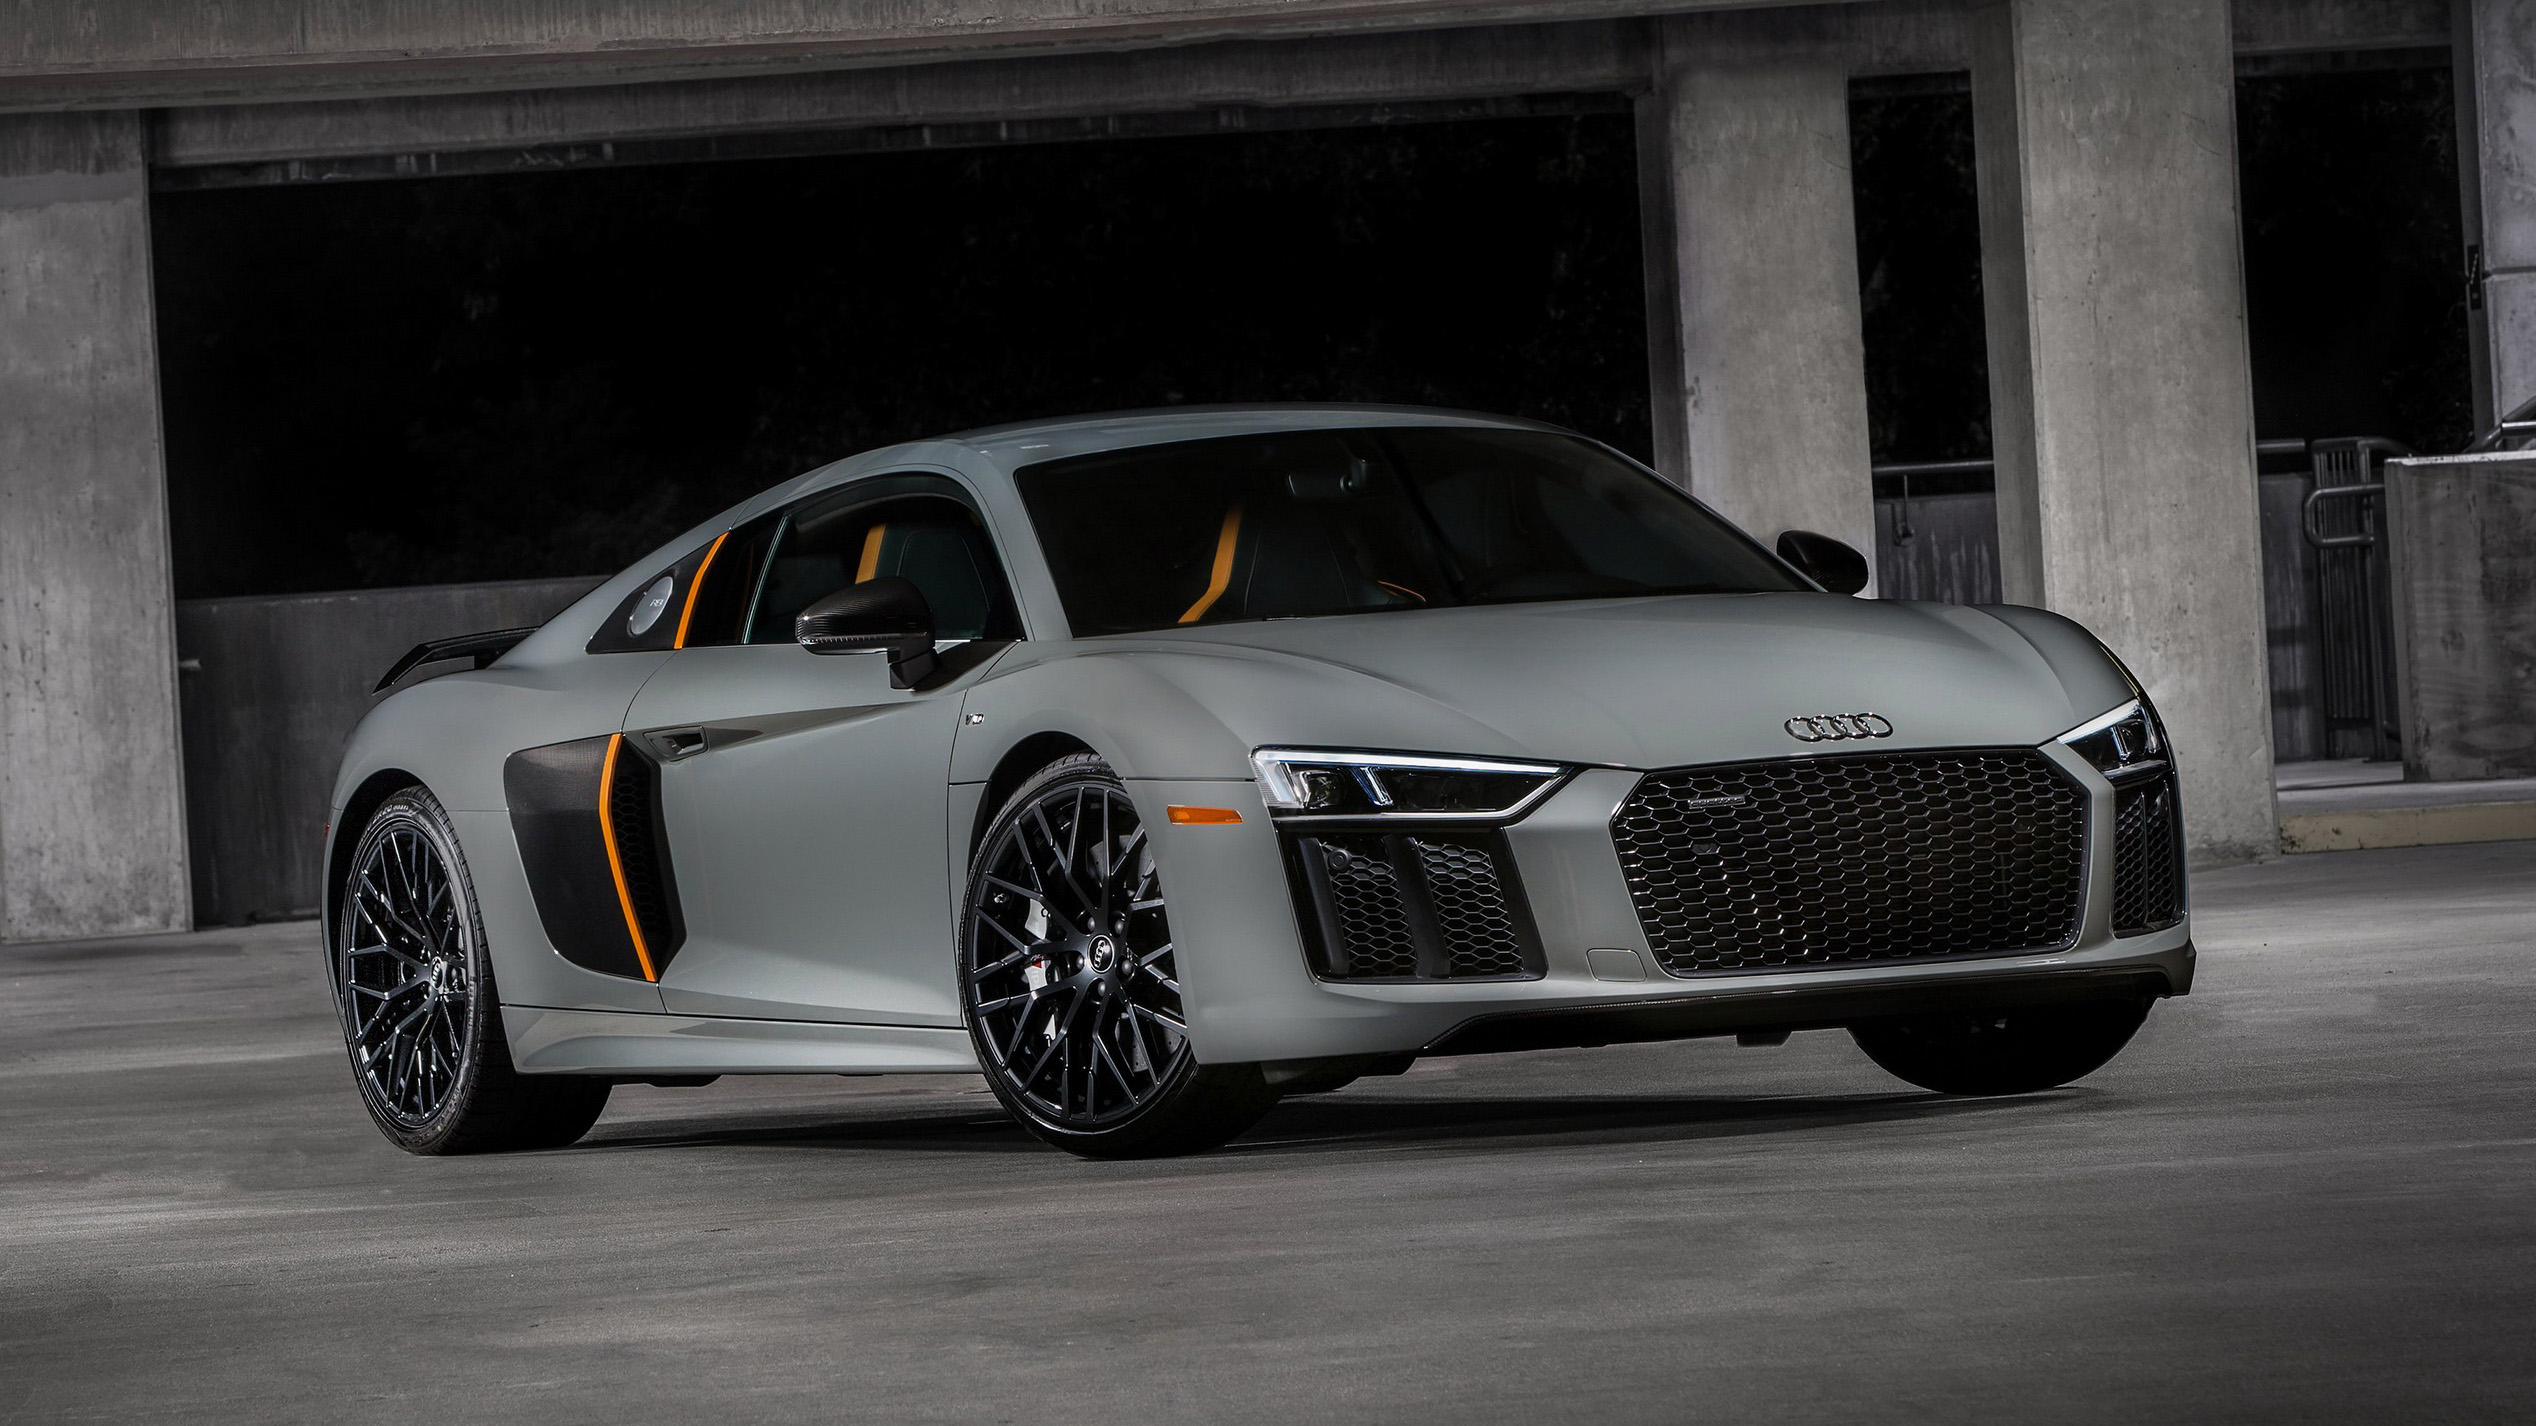 2017 Audi R8 V10 Plus Exclusive Edition | Top Speed. »